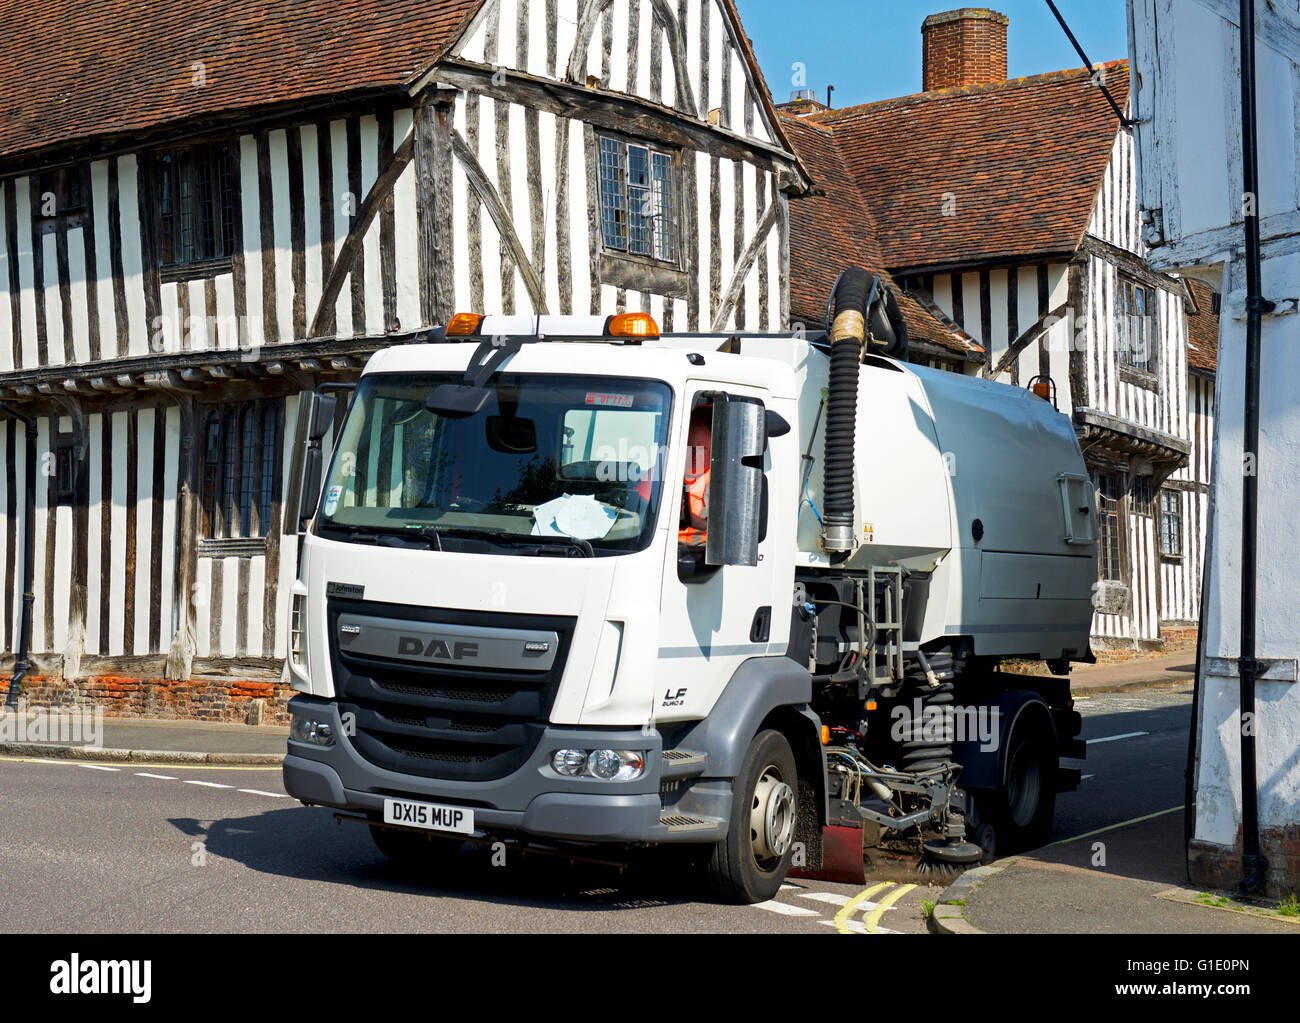 Street-sweeping vehicle in the village of Lavenham, Suffolk, England UK - Stock Image